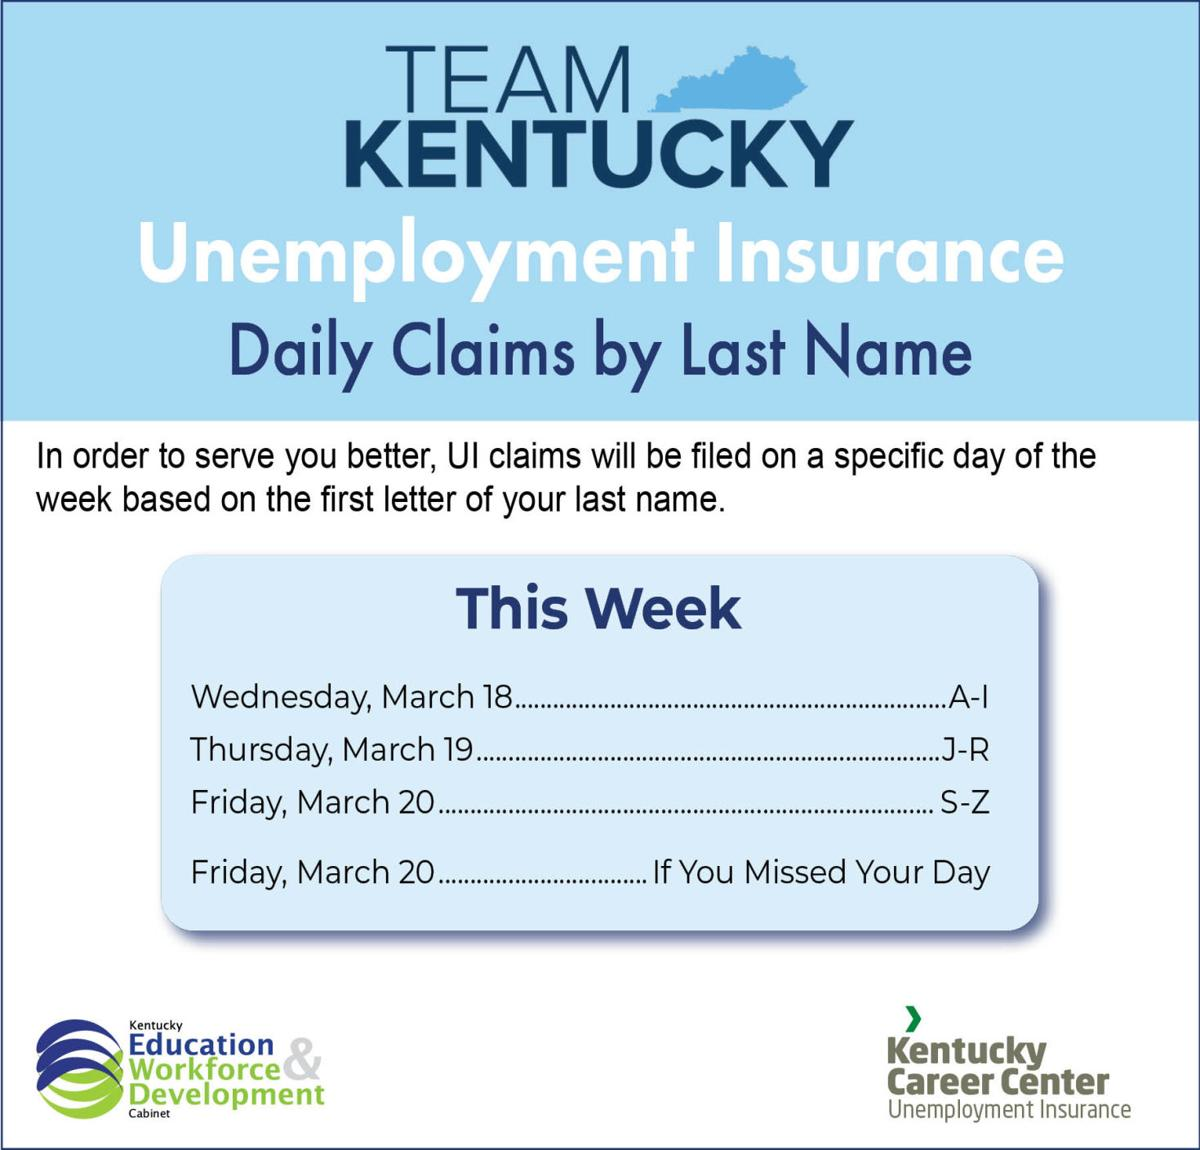 Daily Claims by last name